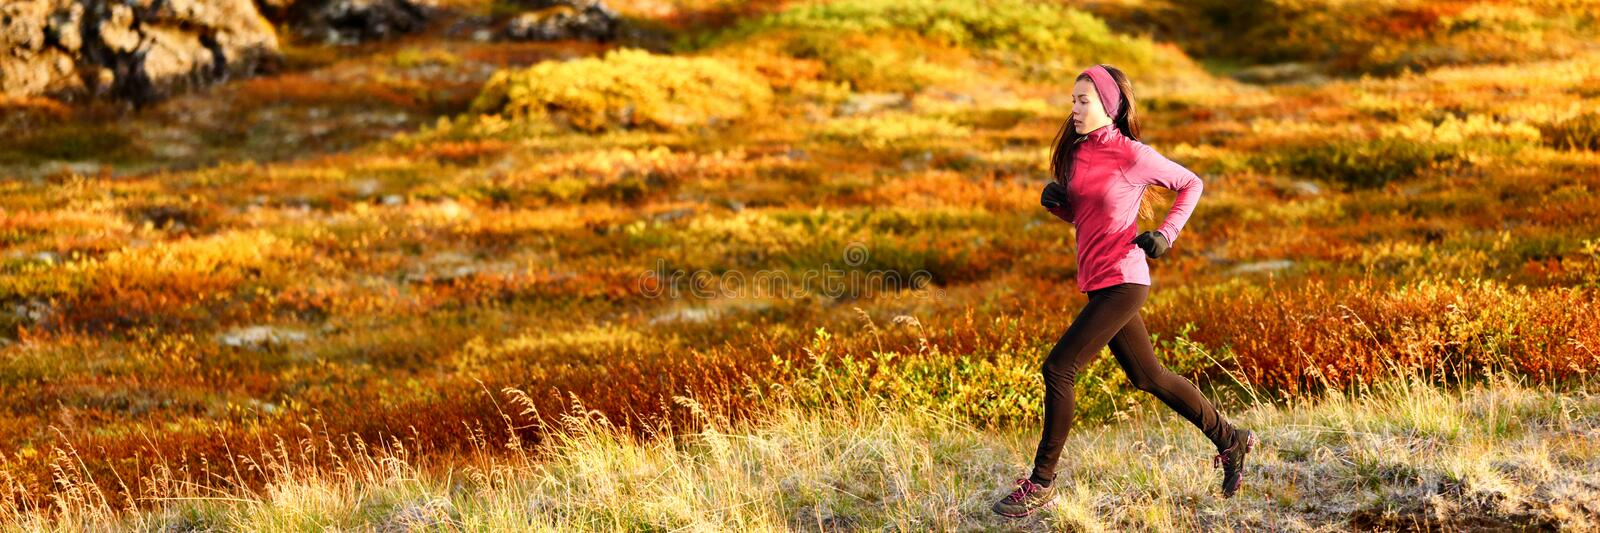 Healthy active lifestyle trail running athlete woman training outdoors doing cardio exercise in autumn foliage background. Panoramic banner royalty free stock photo